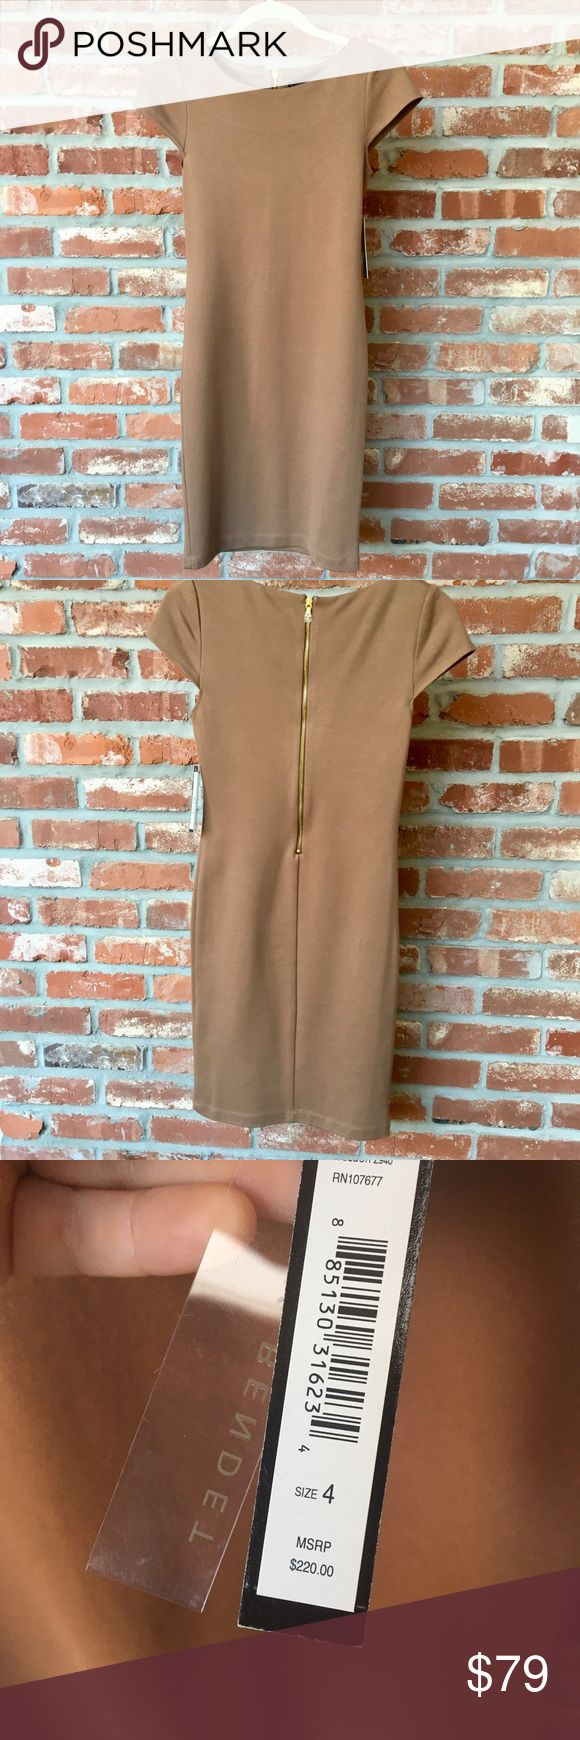 NWT - Alice + Olivia Tan Dress Perfect for any occasion!  Alice + Olivia light brown sheath.  Hugs curves, while still being conservative.  Runs small, which is why I have it listed as a 2. Alice & Olivia Dresses